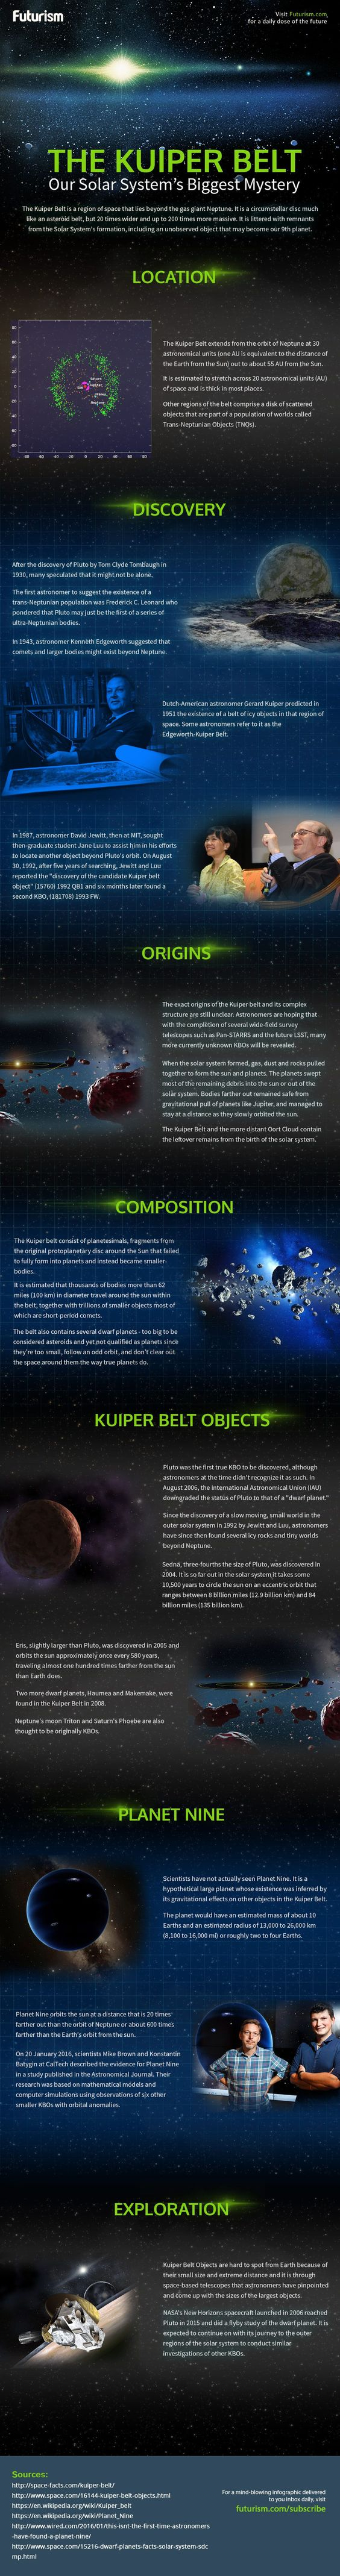 The Kuiper Belt: One of Our Solar System's Biggest Mysteries